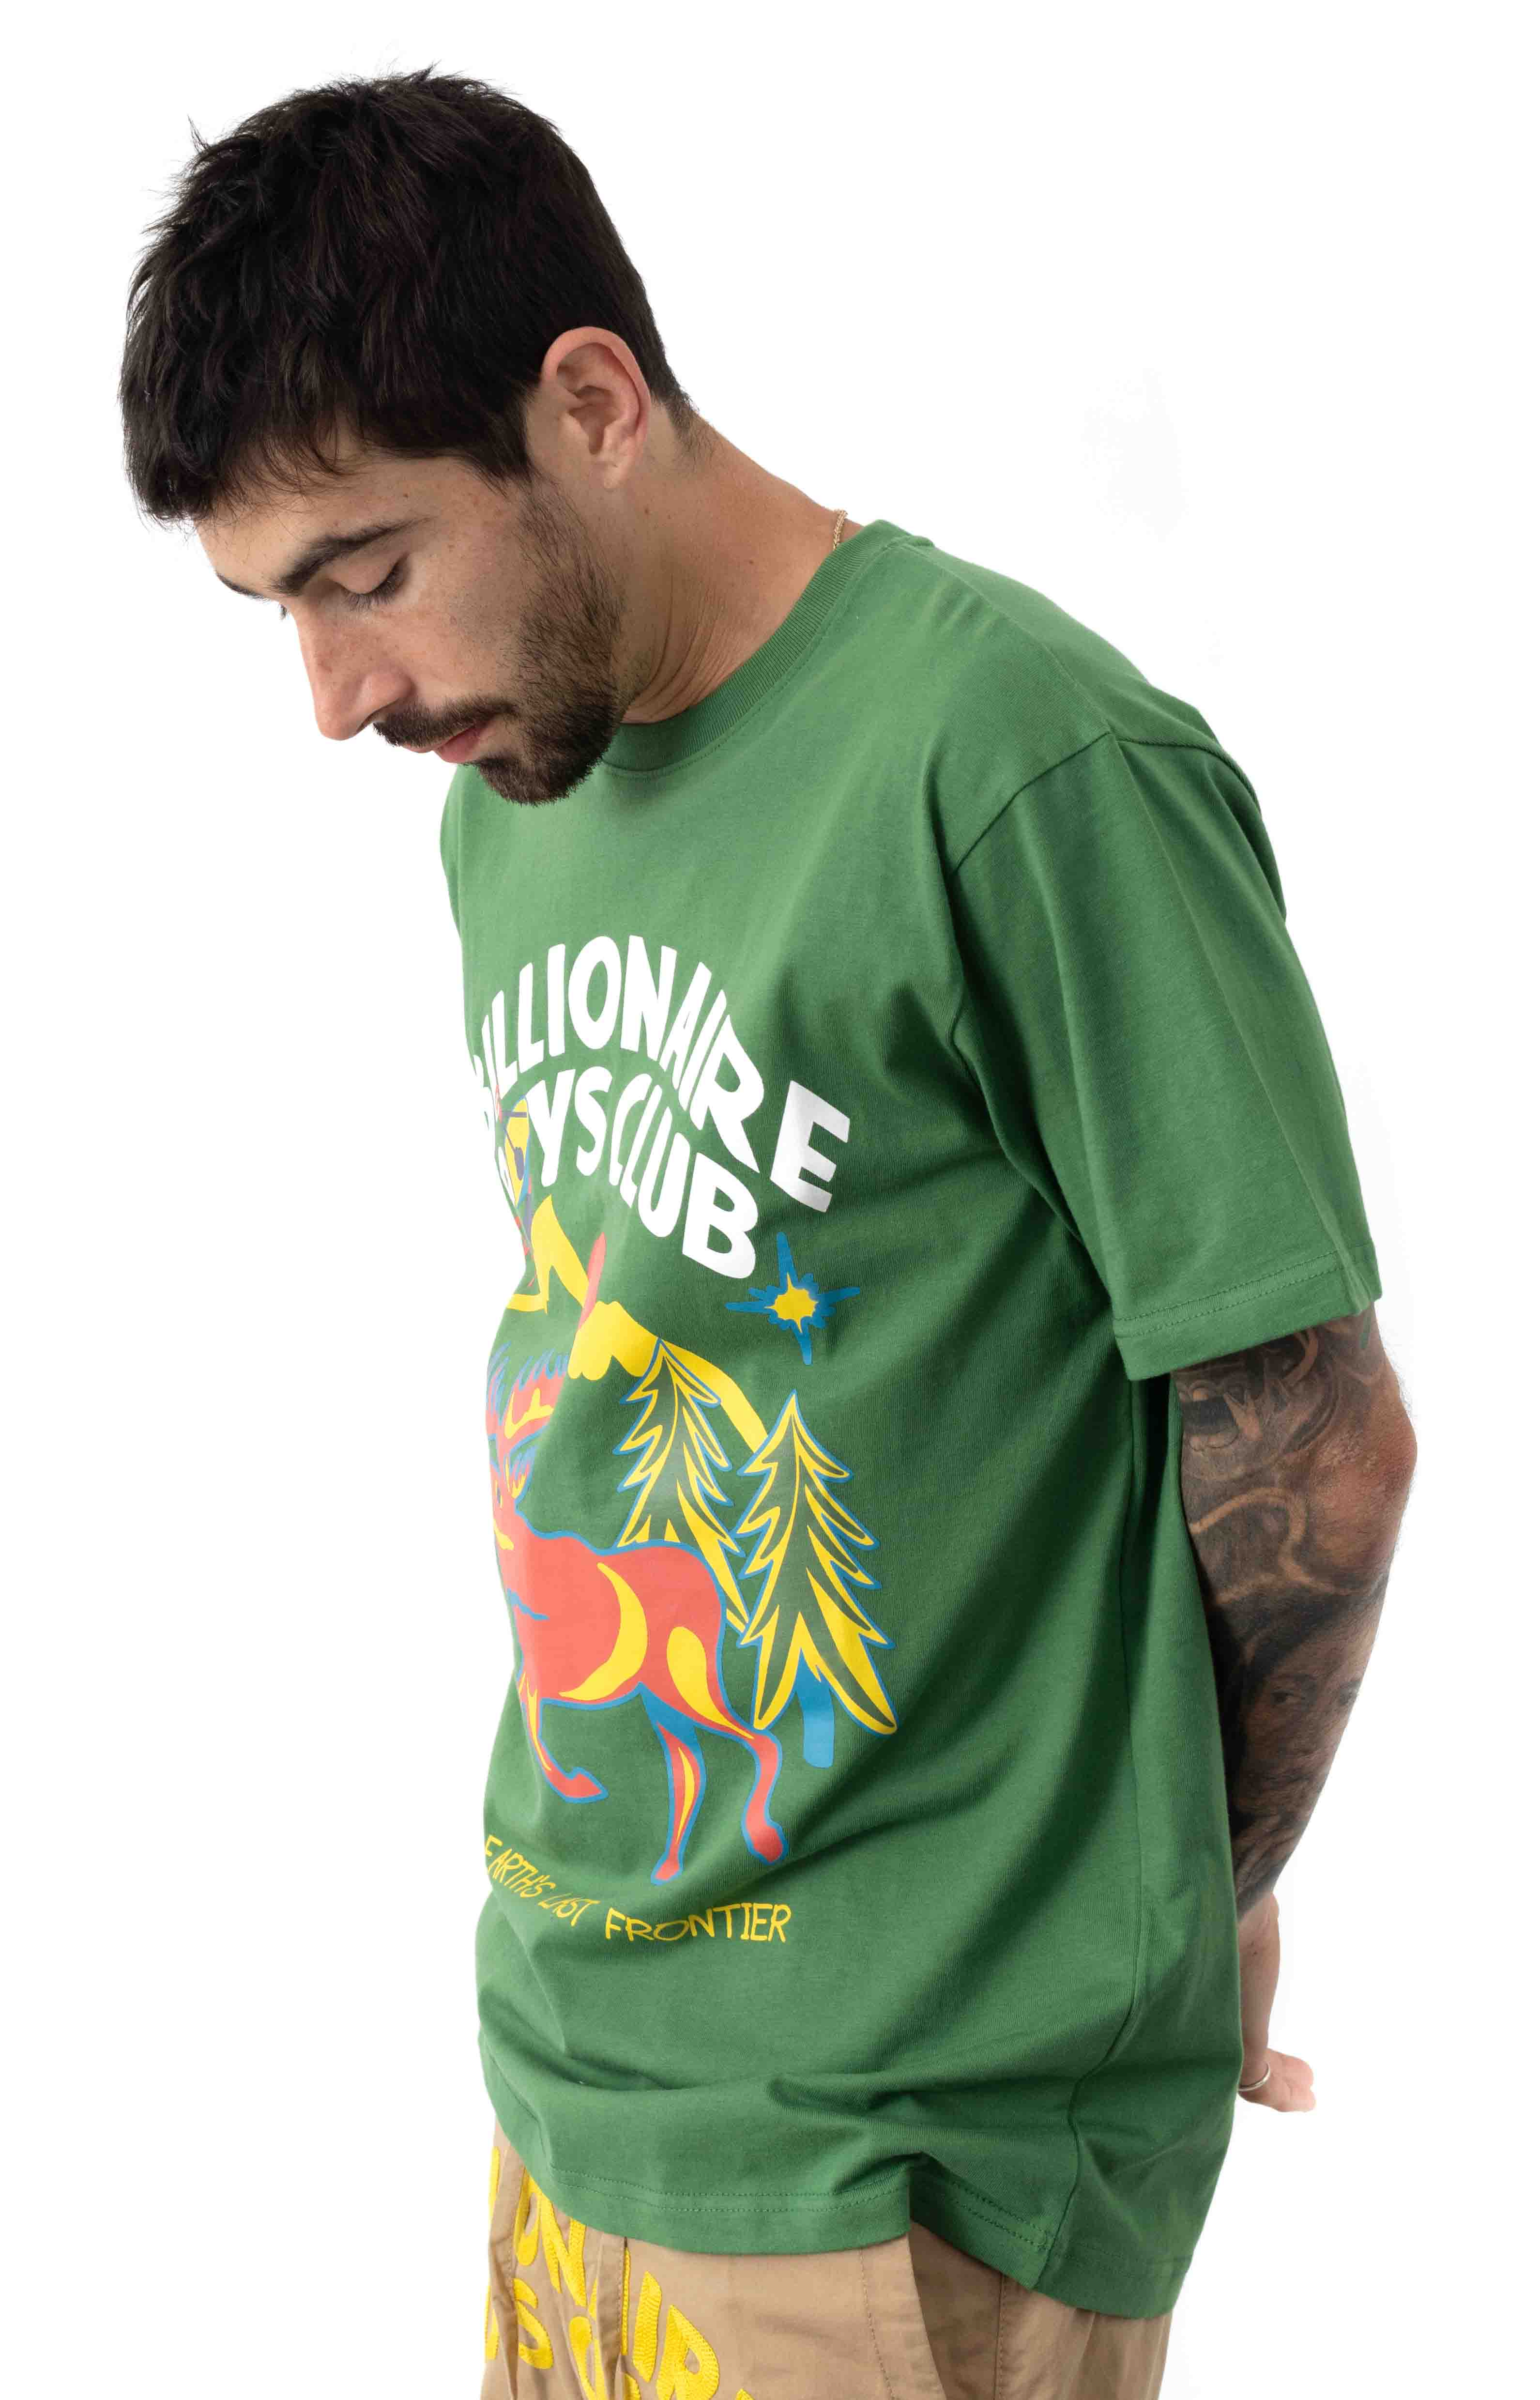 BB Open Trail T-Shirt - Willow Bough 2